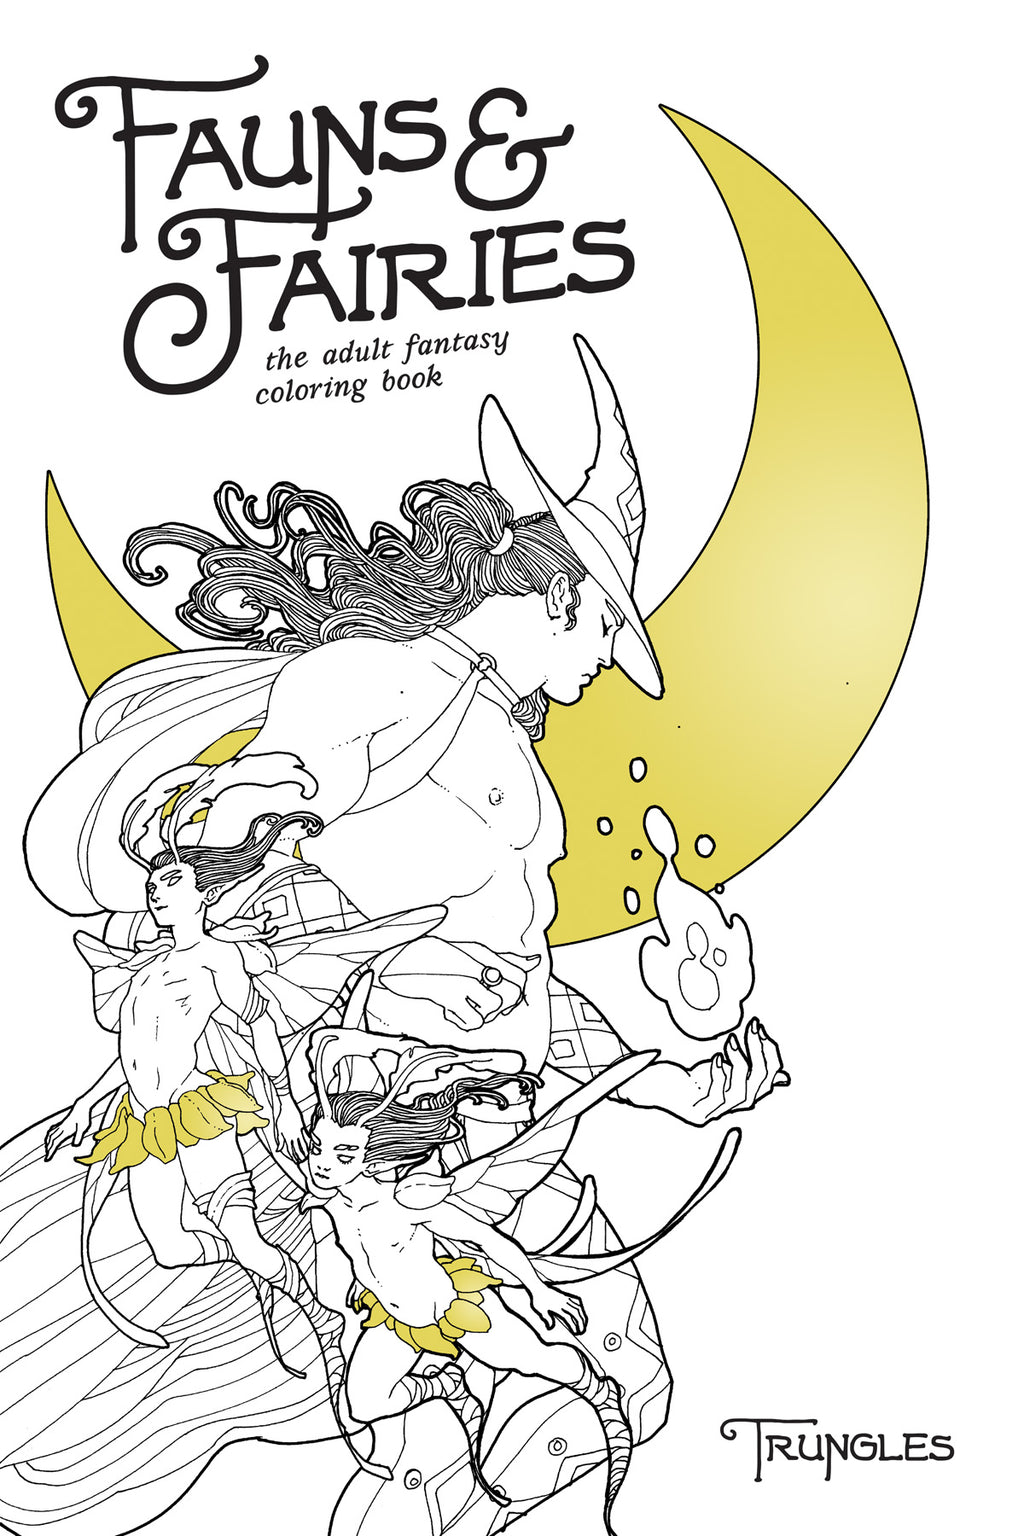 Fauns and Fairies: The Adult Fantasy Coloring Book